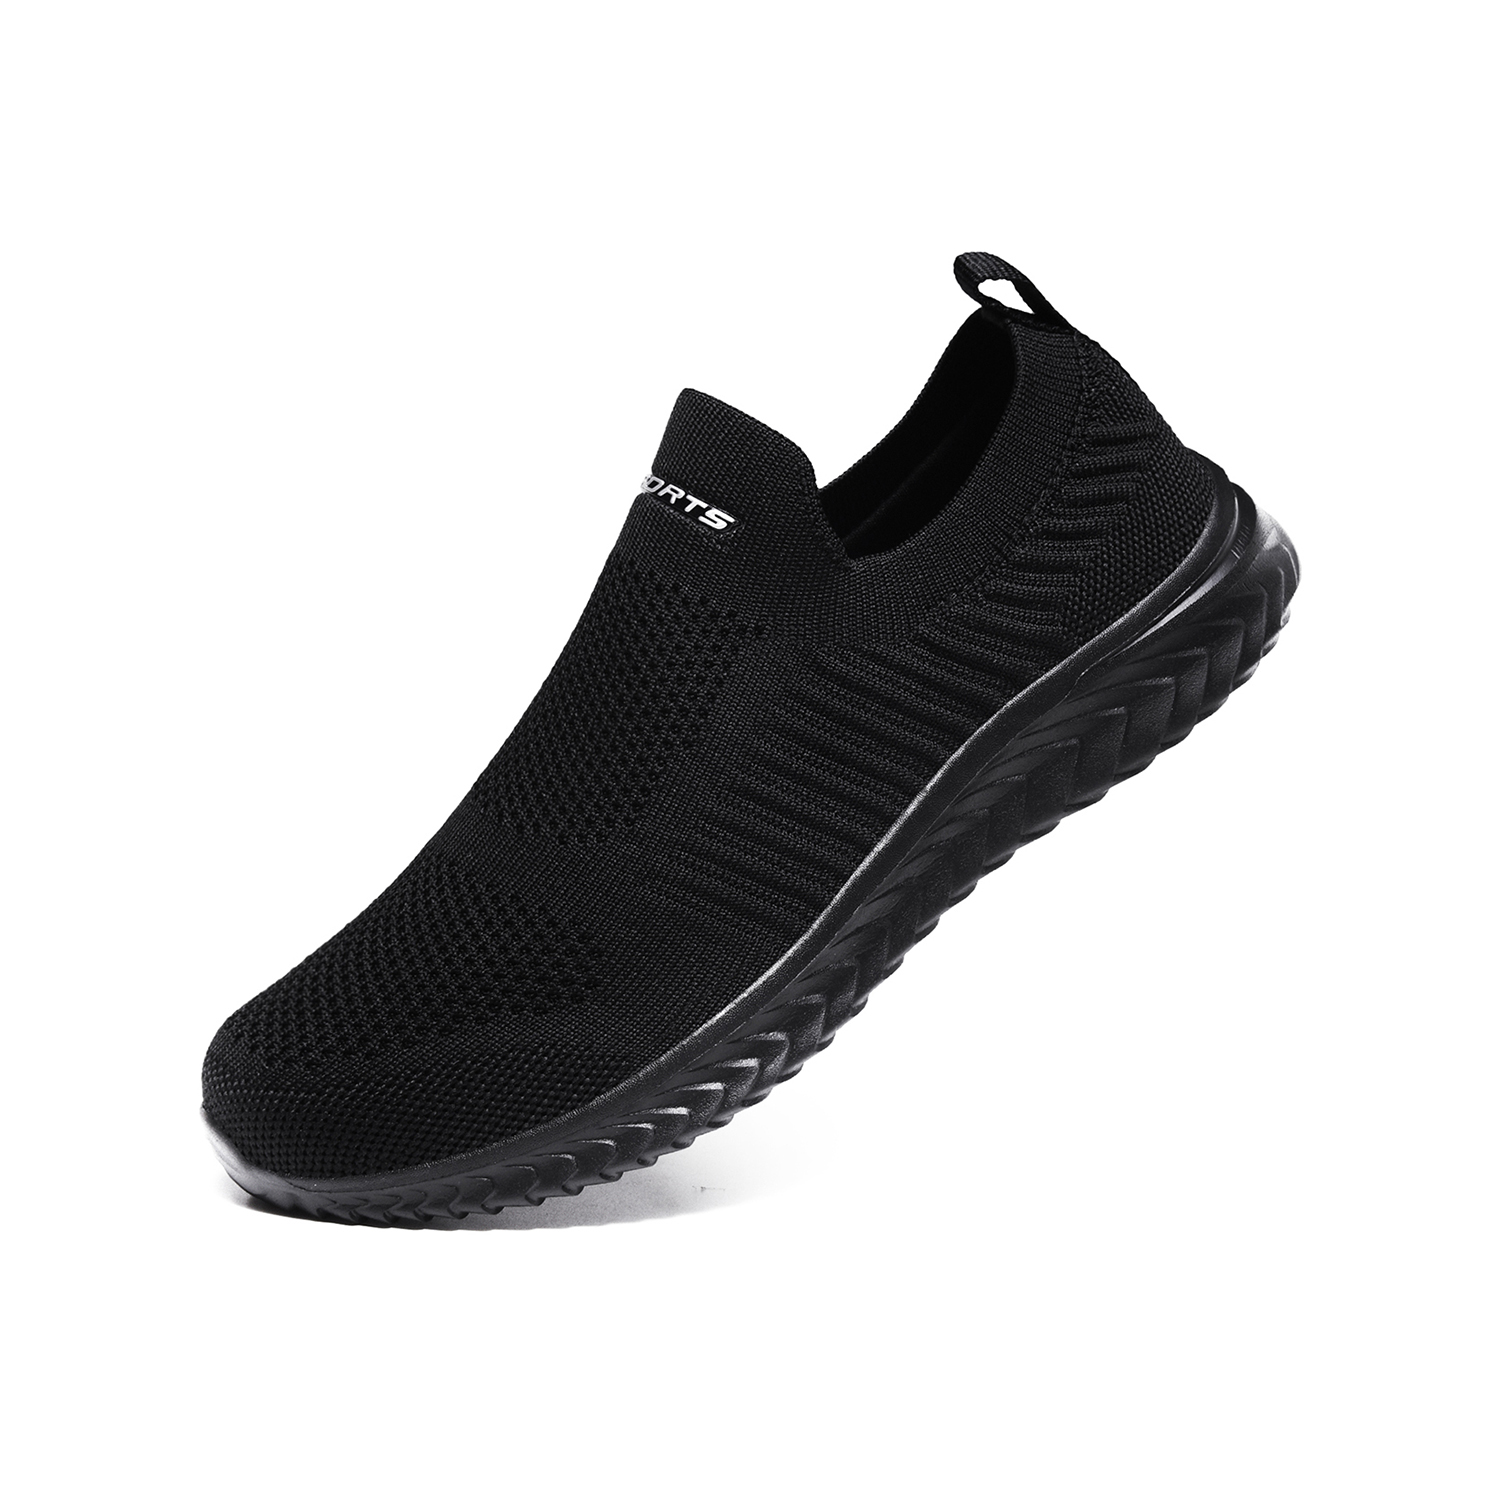 Shoes Men Sneakers Men Comfortable Flyknit Slip On Casual Lazy Shoes Lightweight Couple Sock Sneakers Zapatillas Hombre Footwear